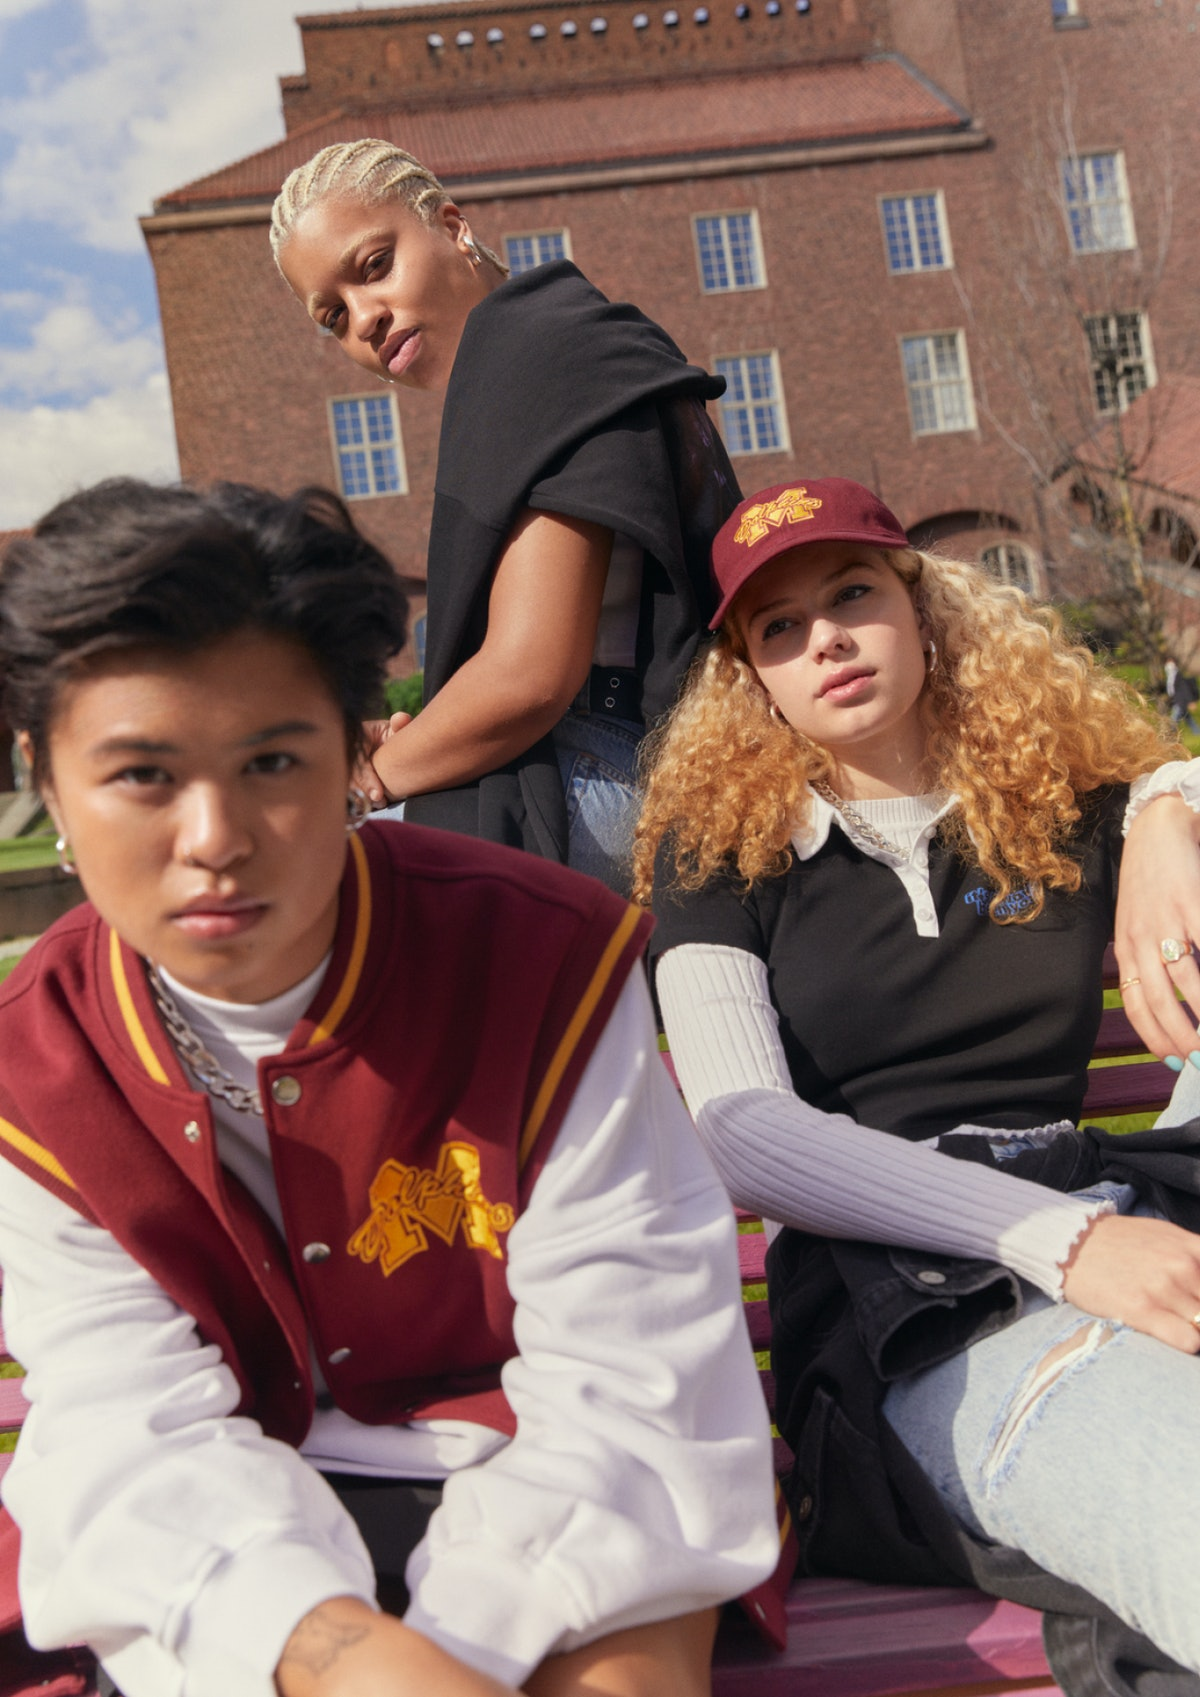 Campaign images from H&M x Netflix's 'Sex Education' Collection